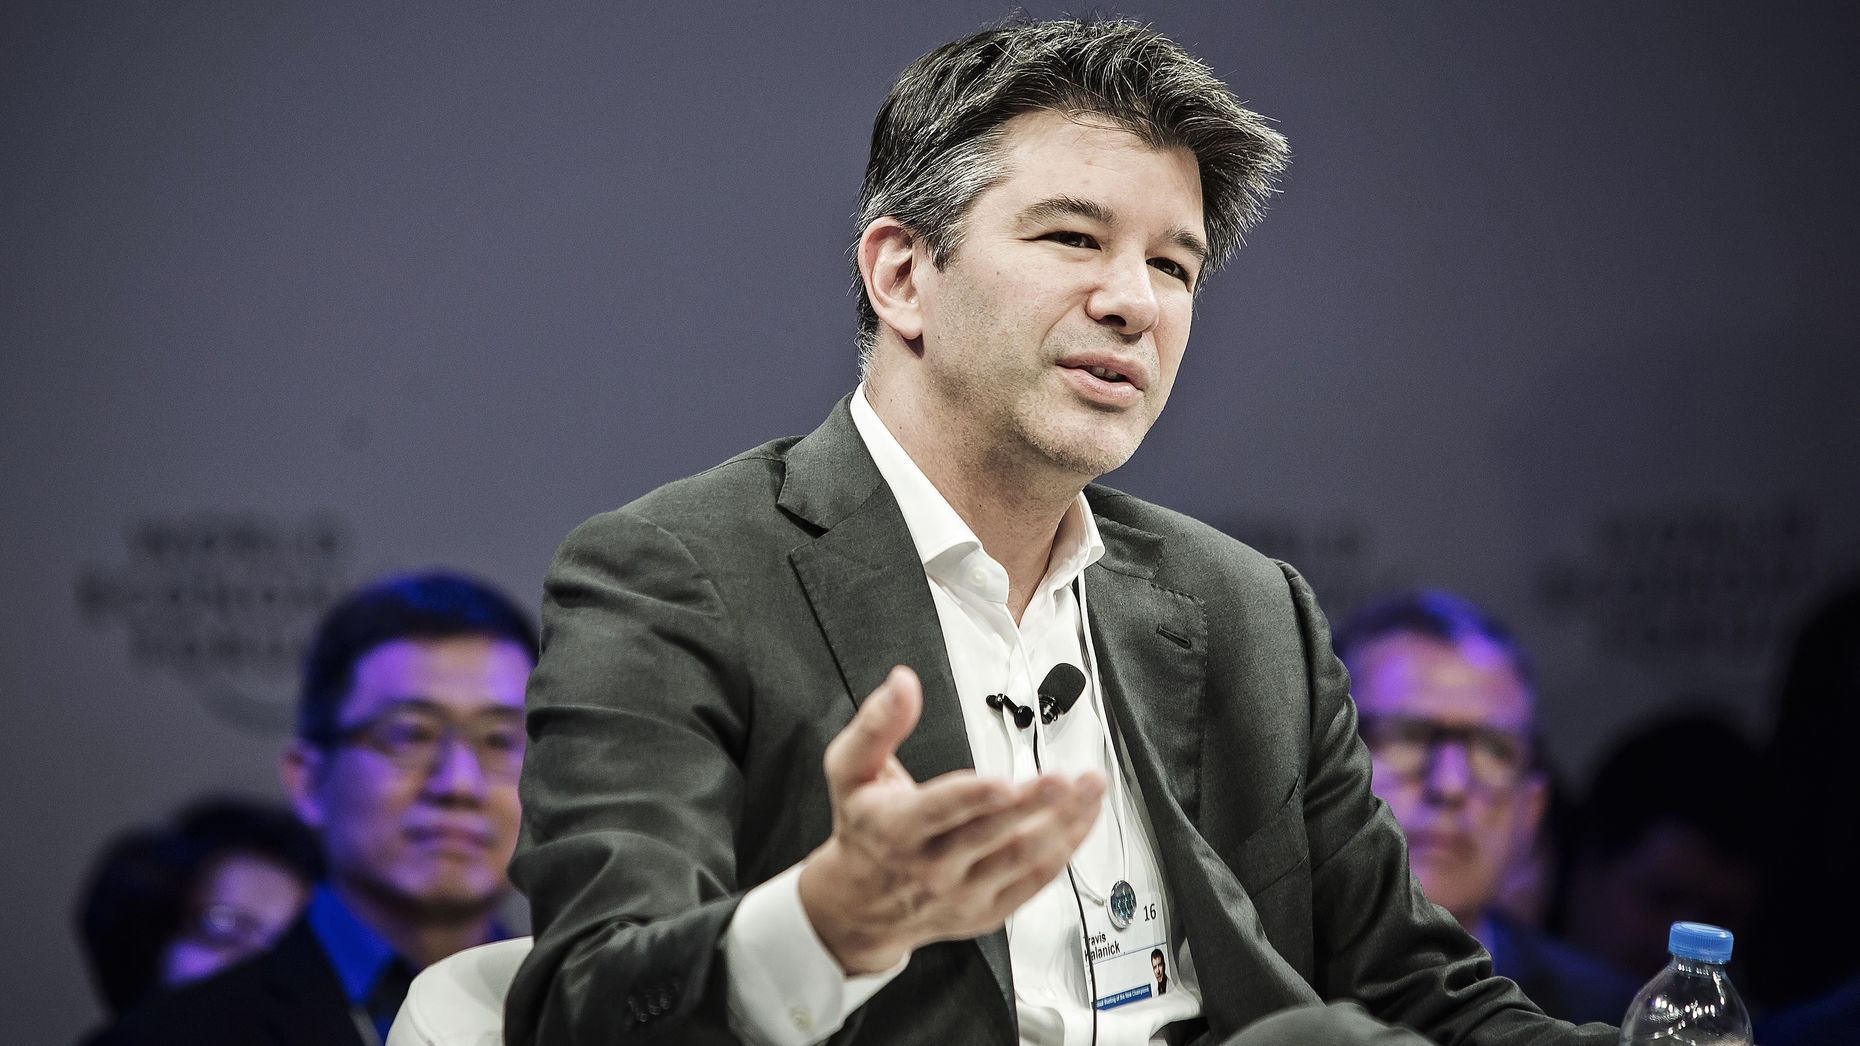 Uber CEO Travis Kalanick. Photo by Bloomberg